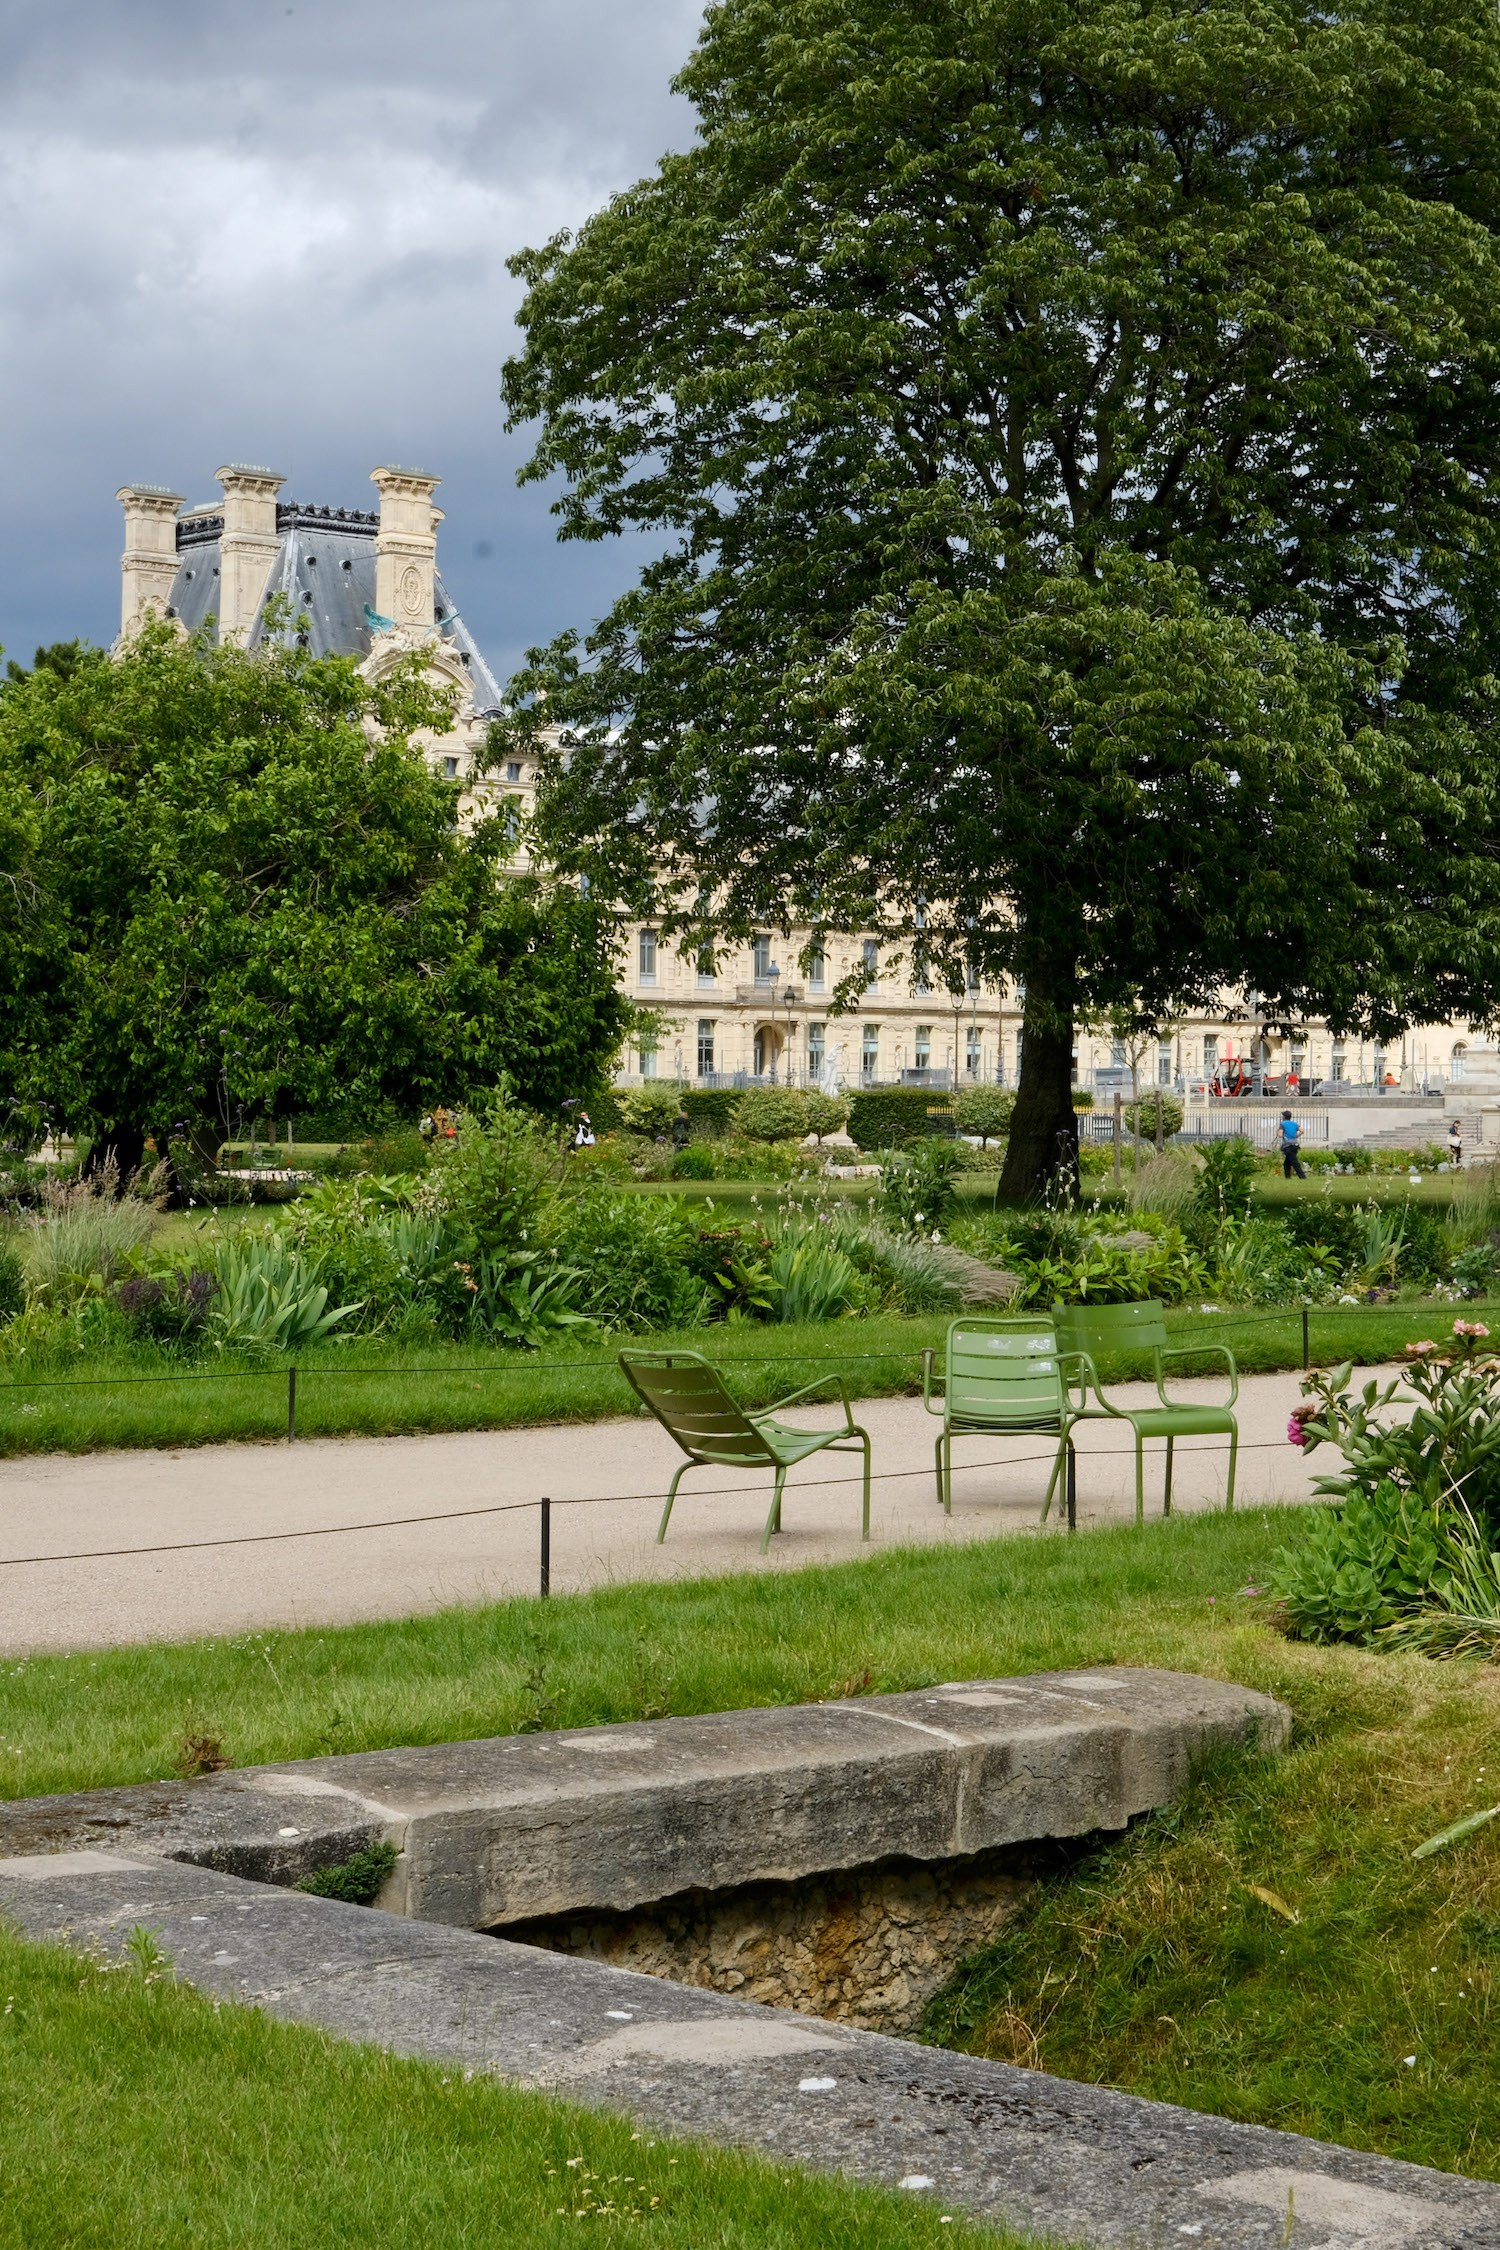 Grey afternoon walk through the Jardin des Tuileries